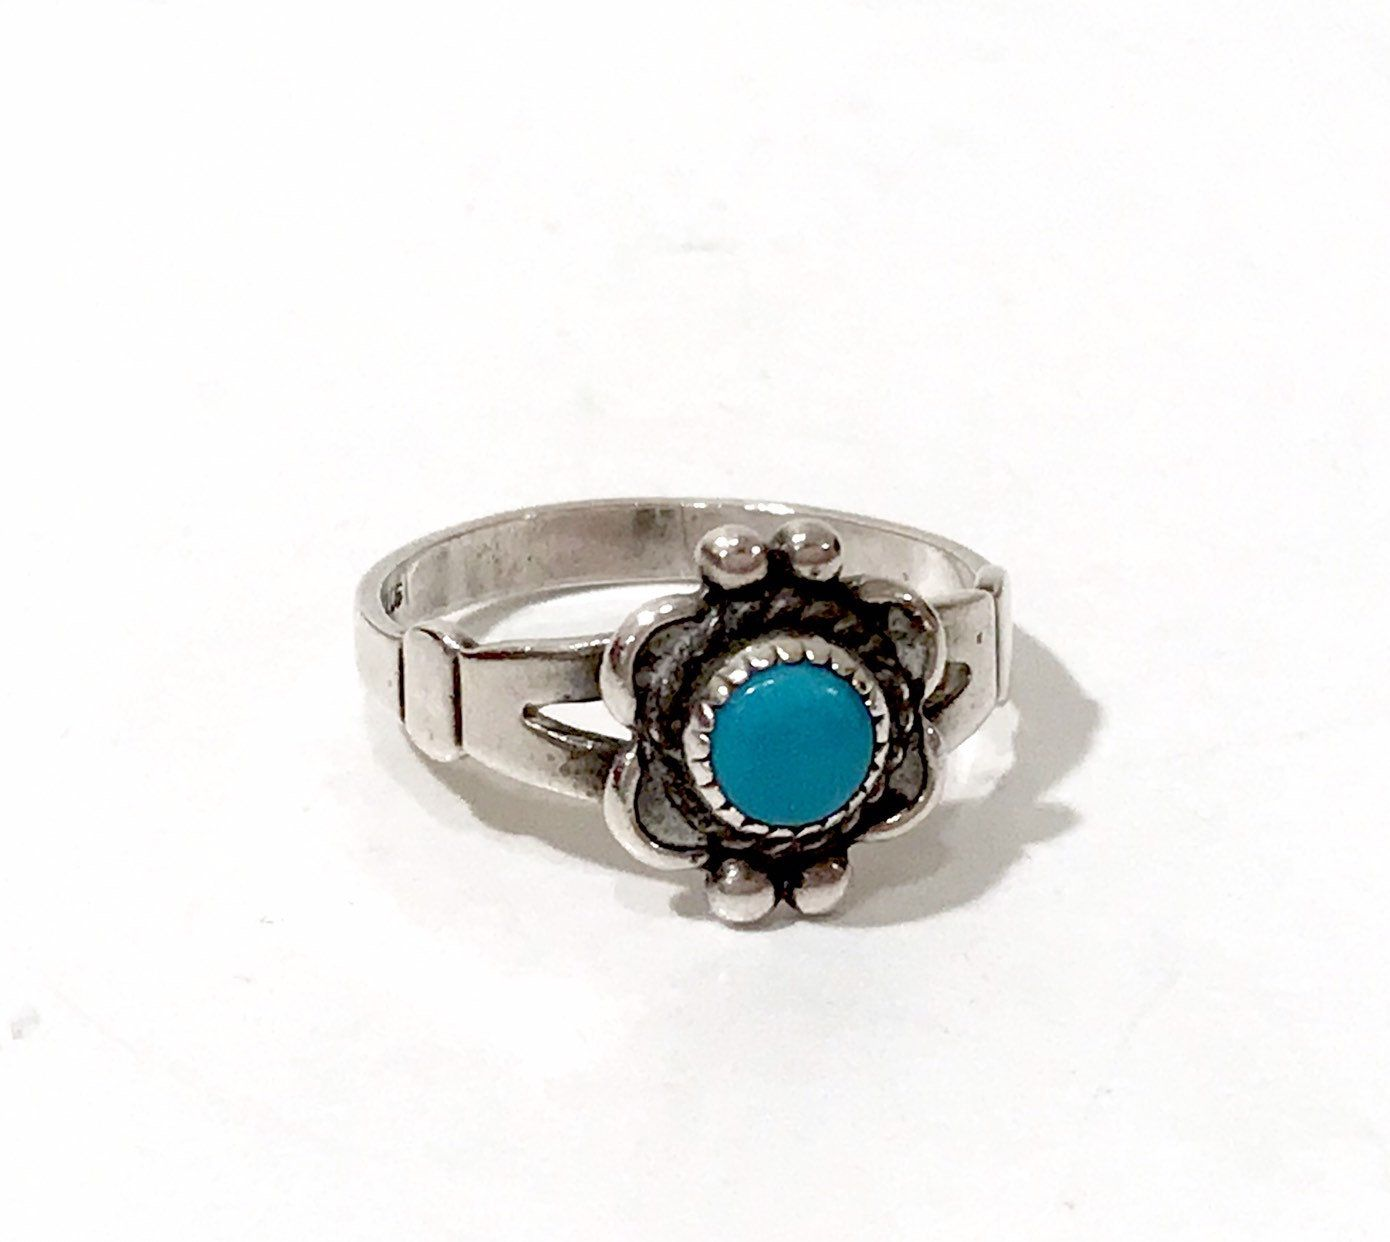 Large turquoise ring Flower Gemstone ring Anniversary gift Turquoise ring Birthday gift Blue statement ring Silver flower ring